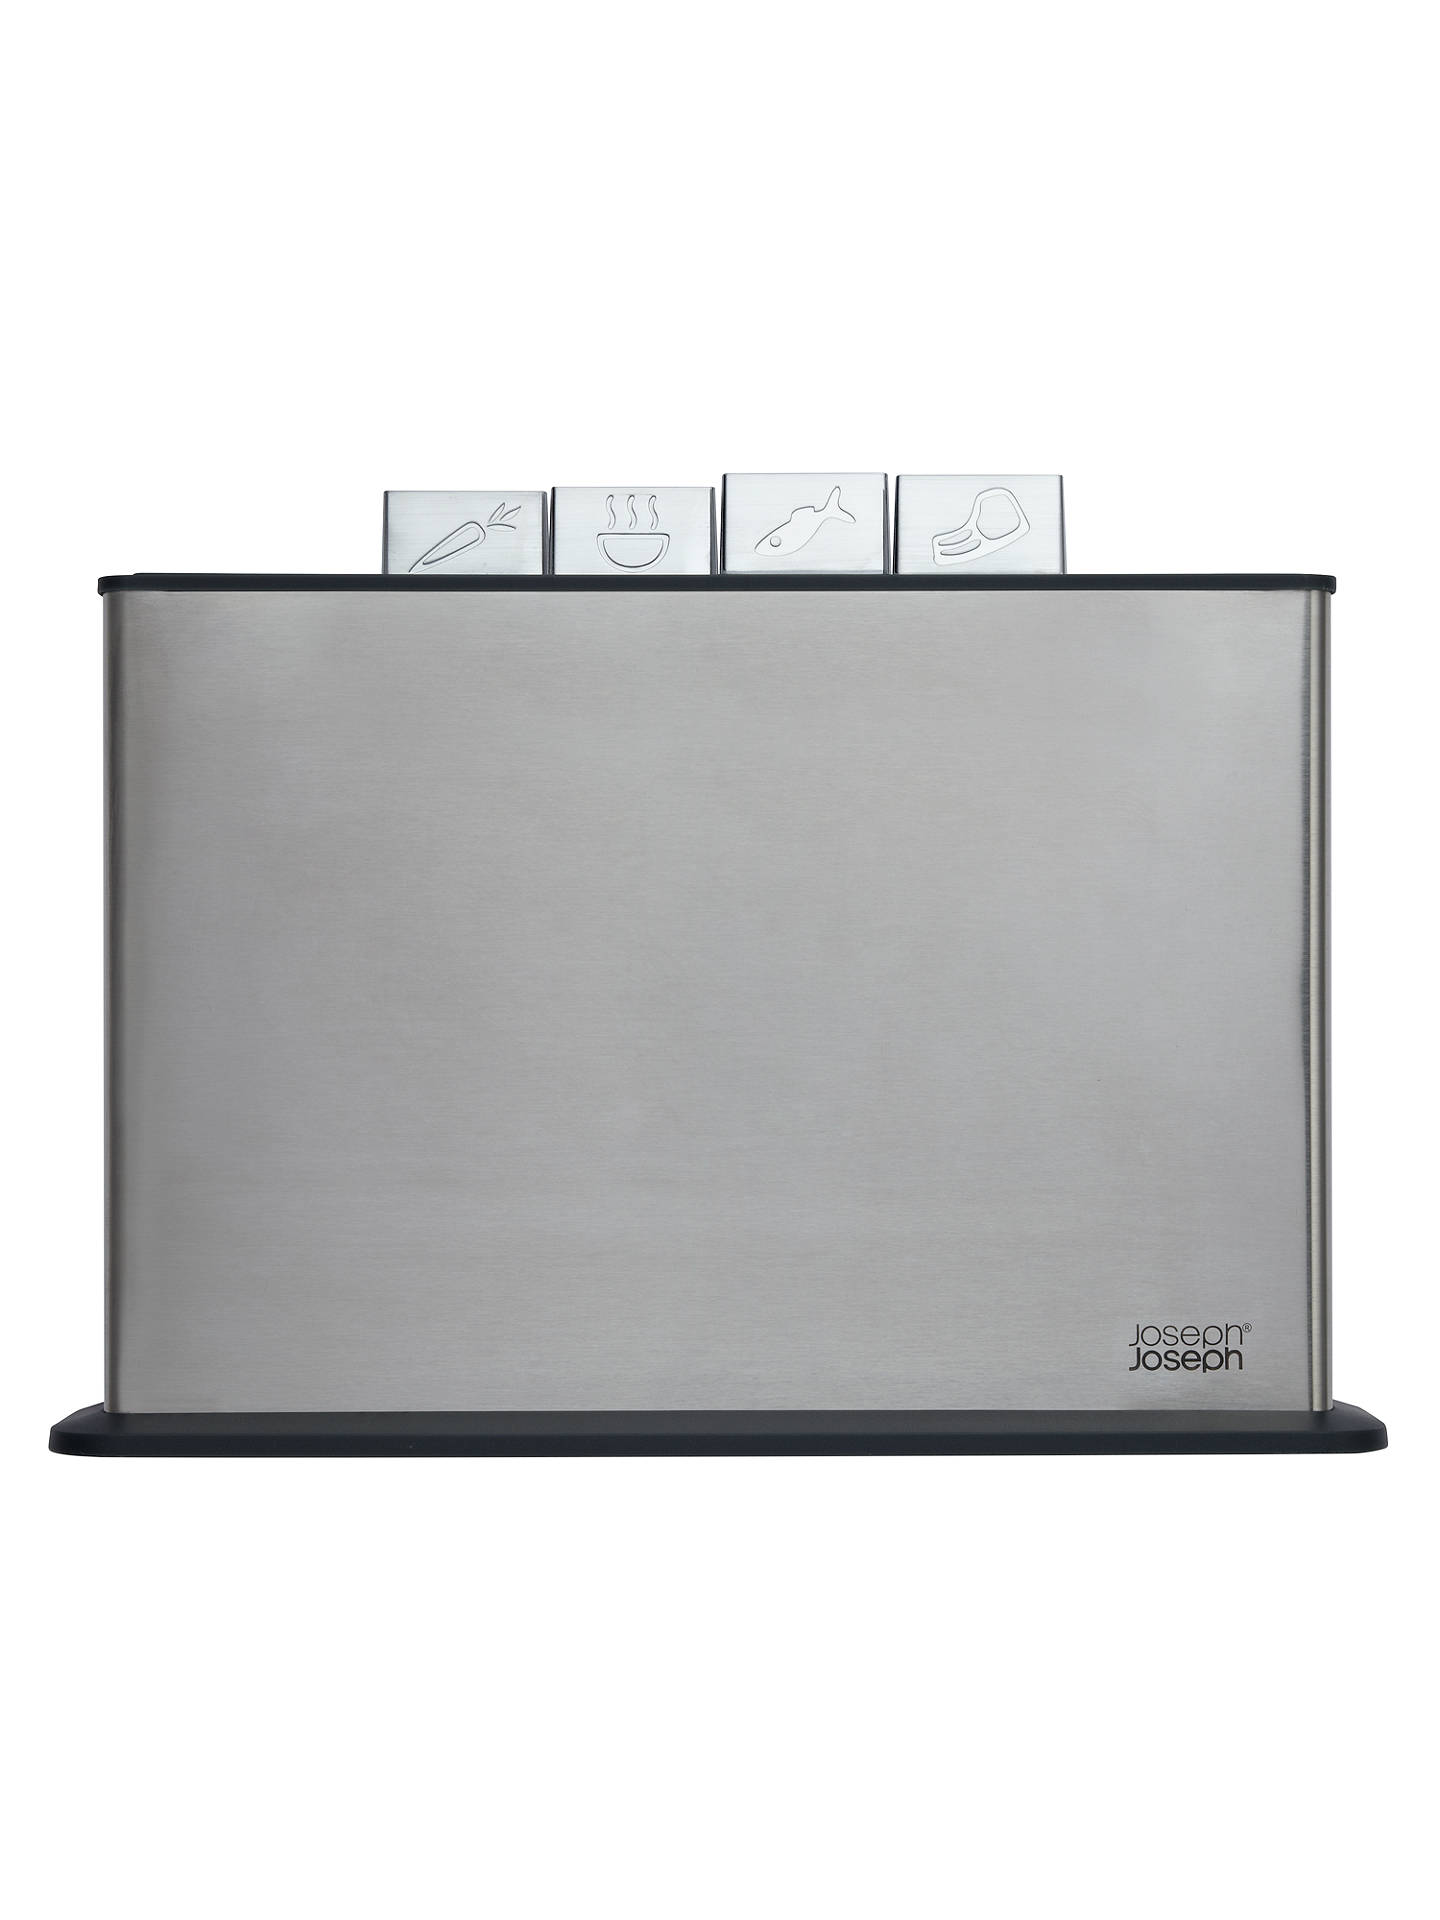 joseph joseph 100 collection index steel chopping boards. Black Bedroom Furniture Sets. Home Design Ideas